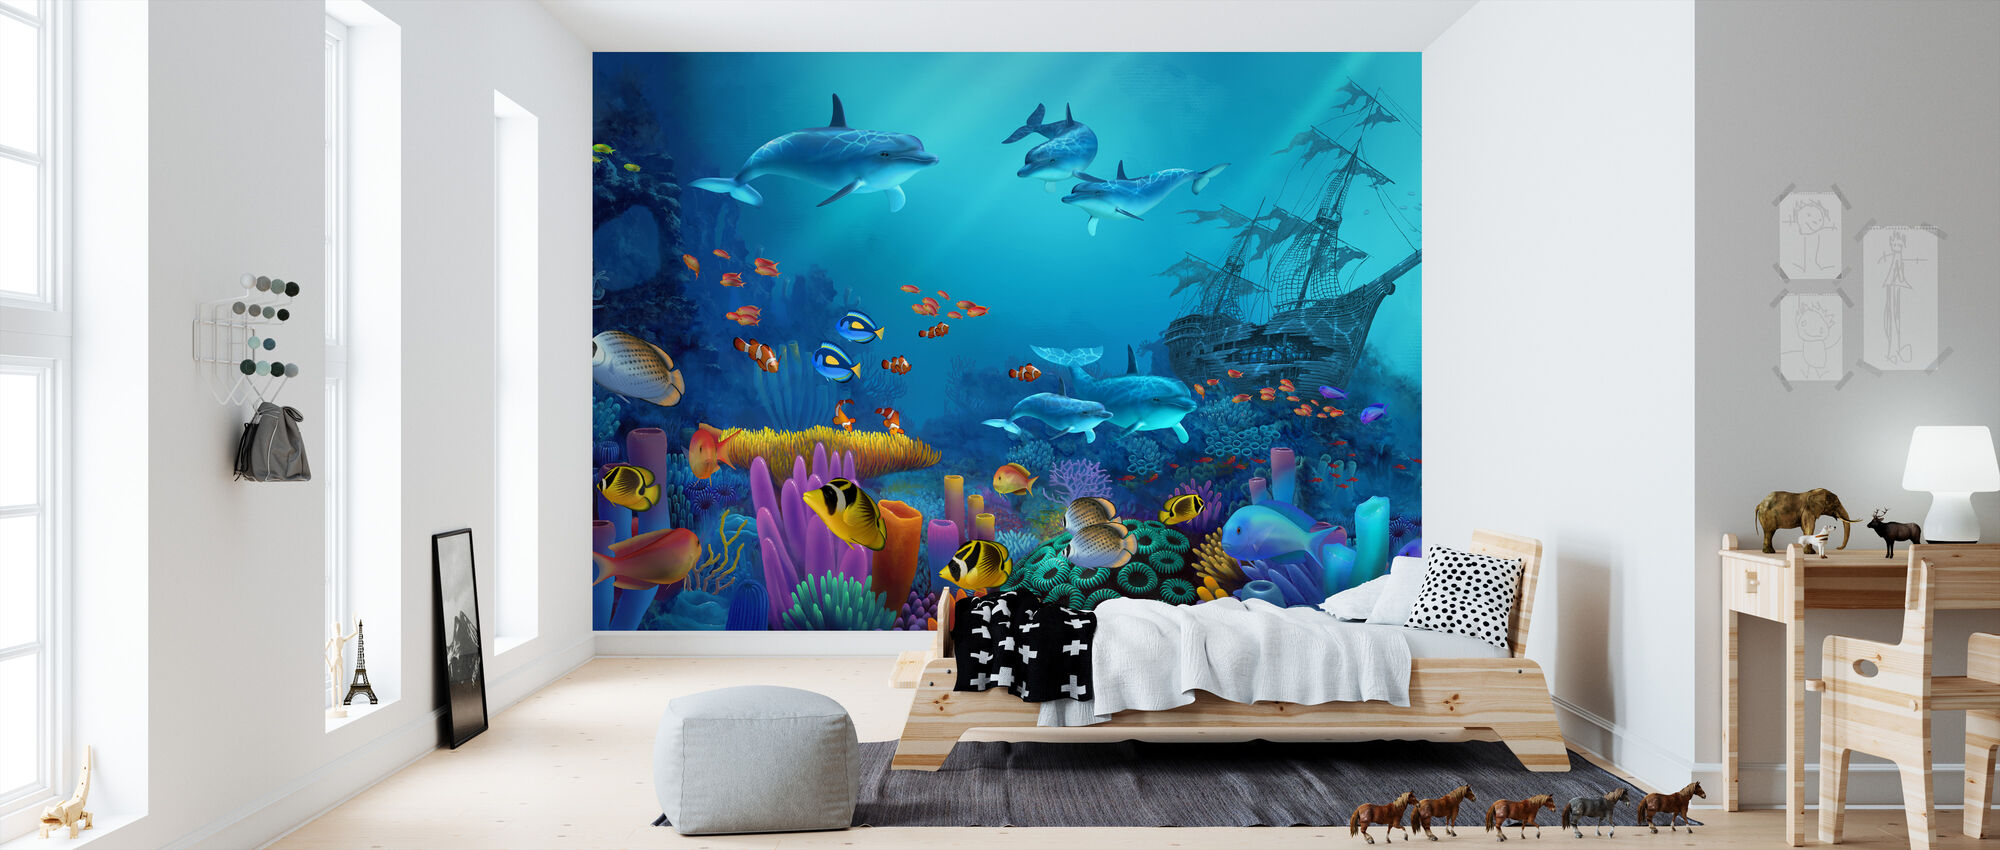 Ocean Colors - Wallpaper - Kids Room